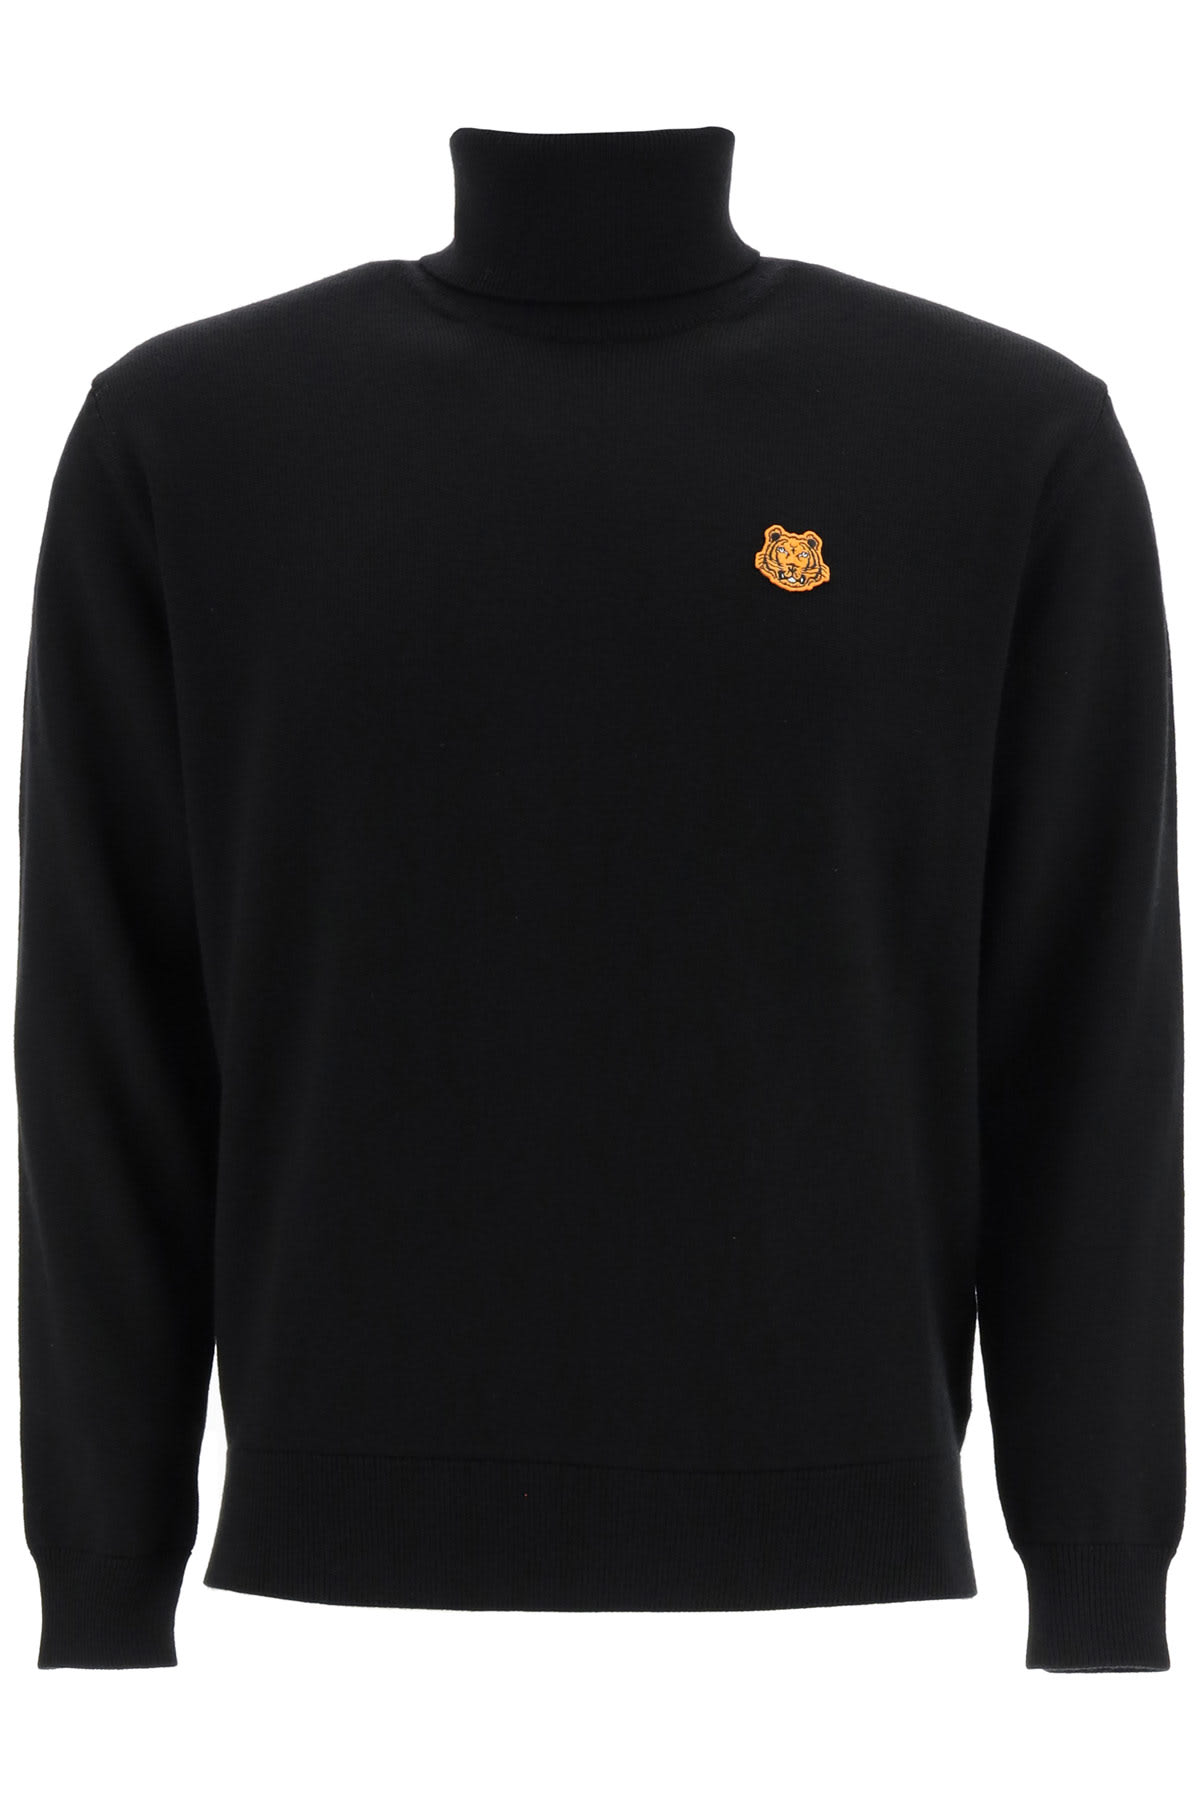 Kenzo Turtleneck Sweater With Tiger Patch